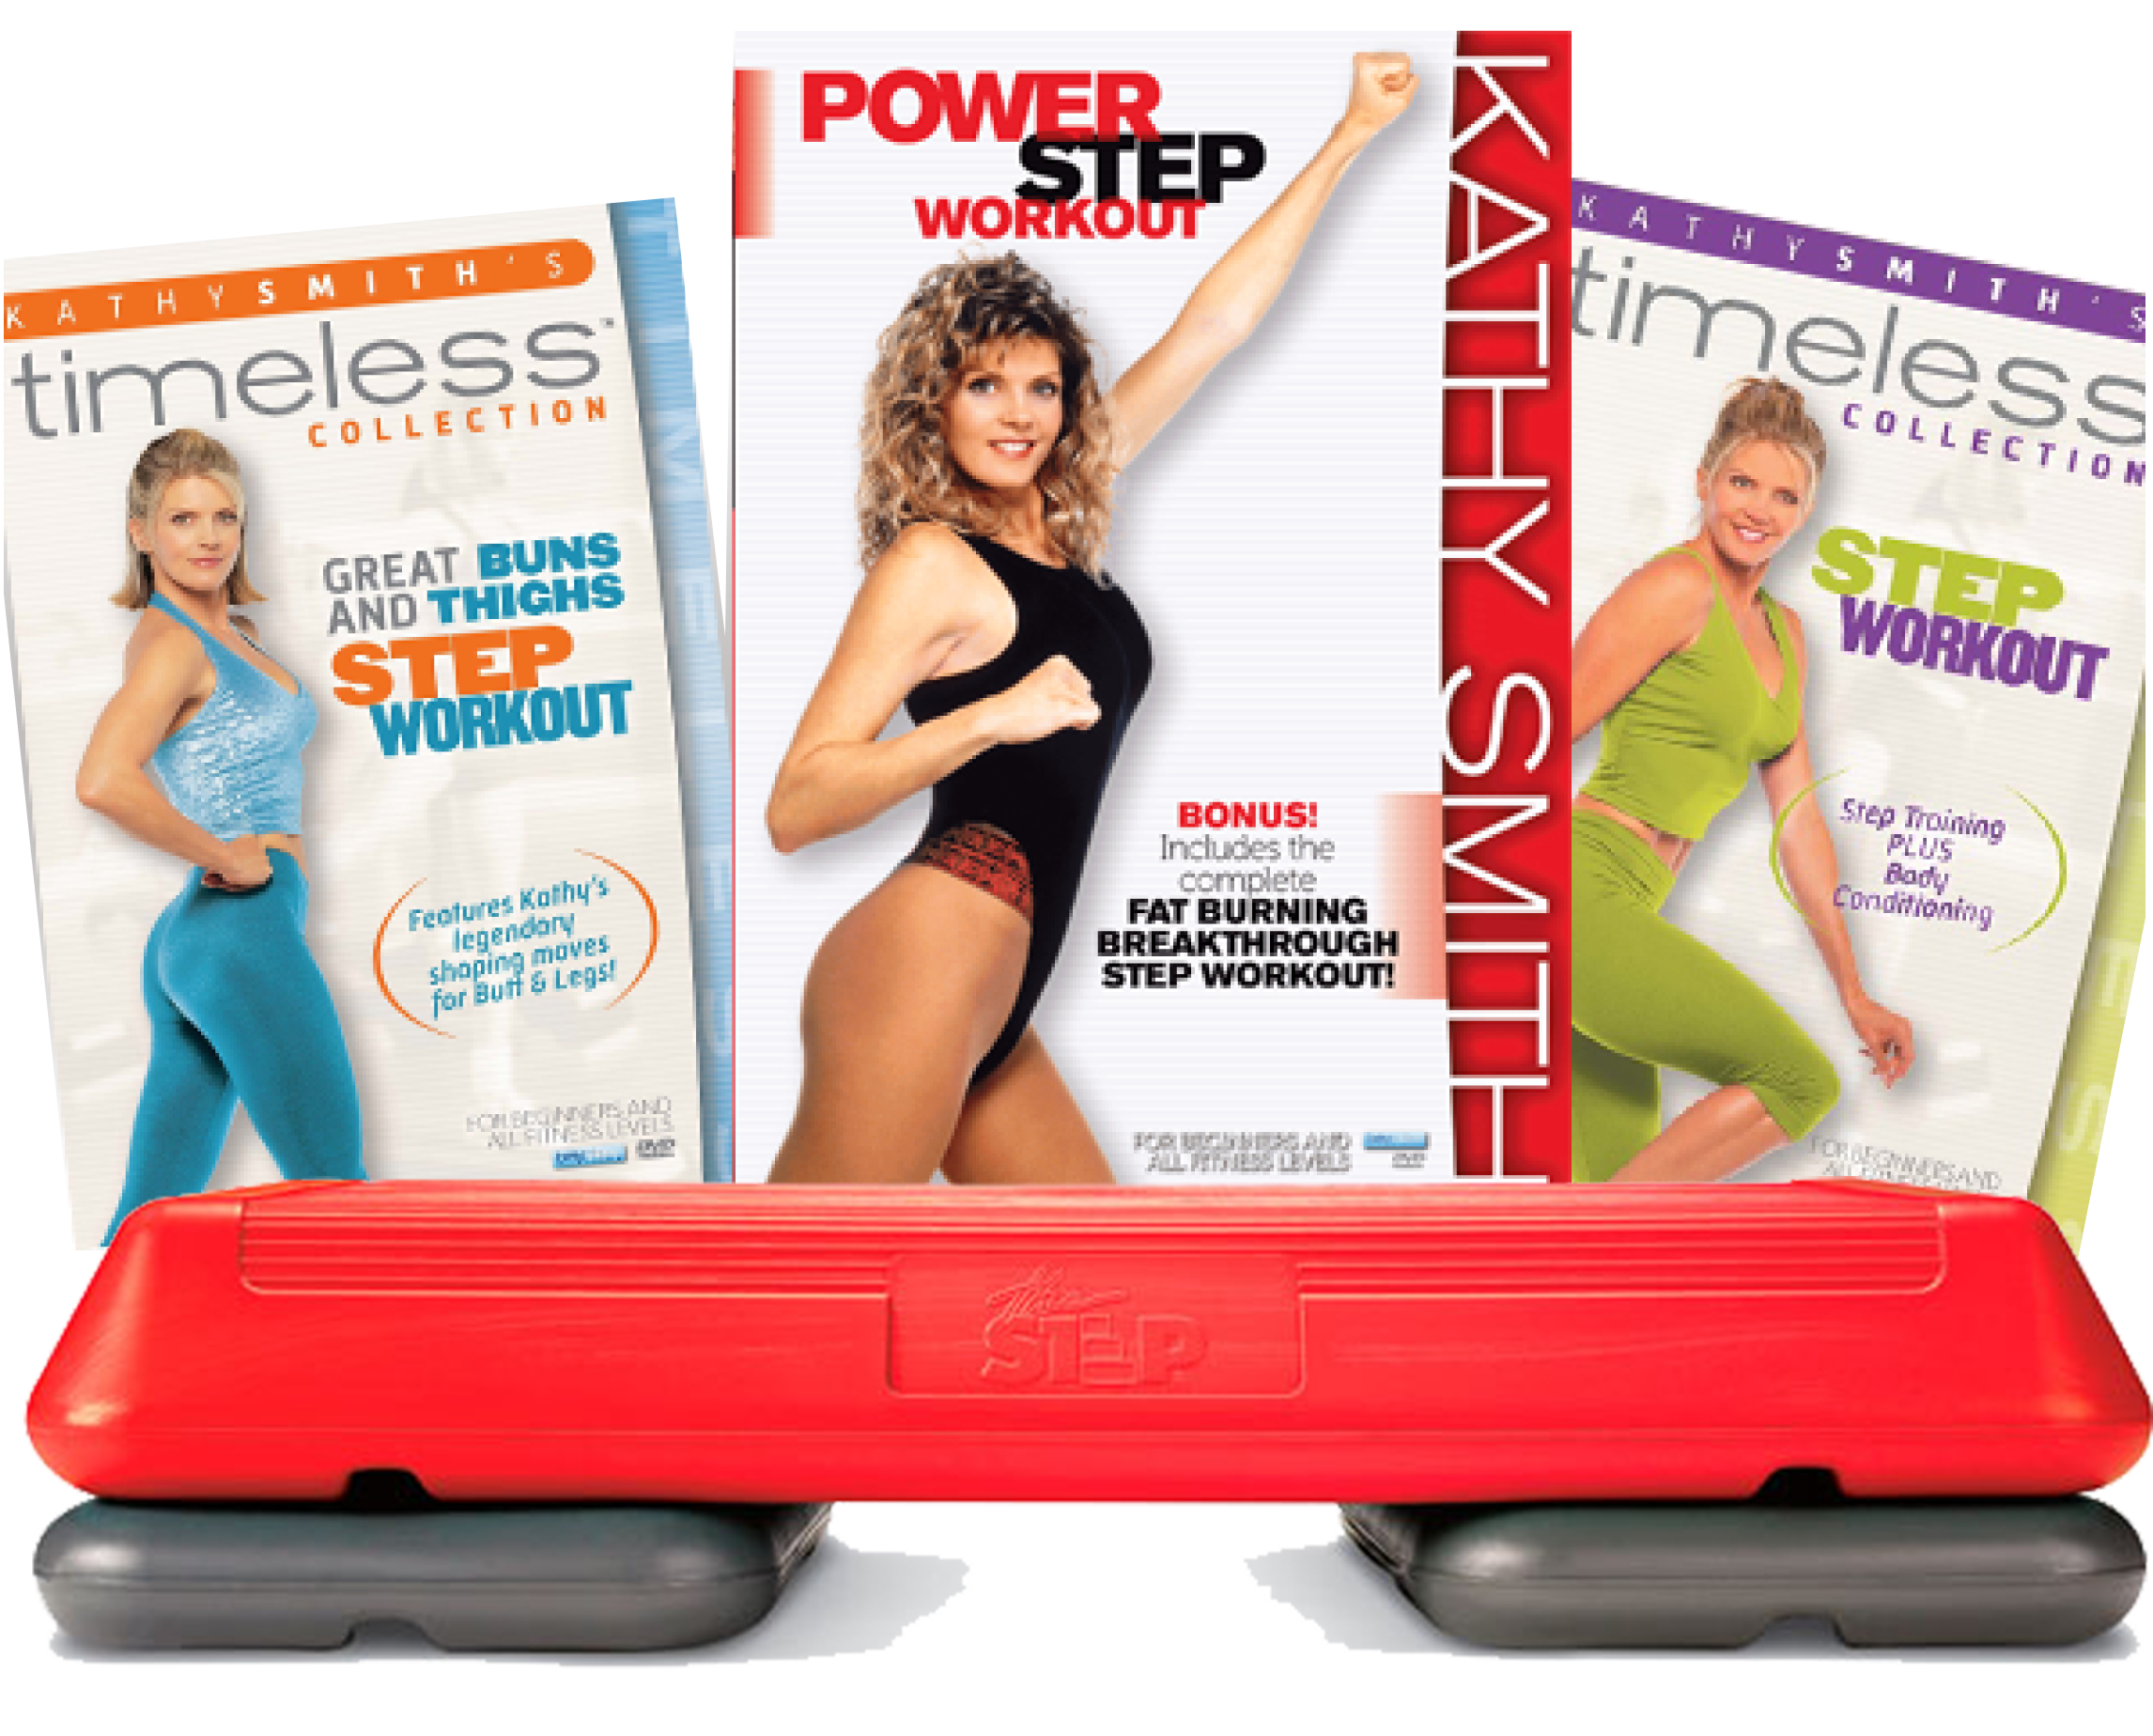 Step off the weight with my 4 step aerobics workouts!